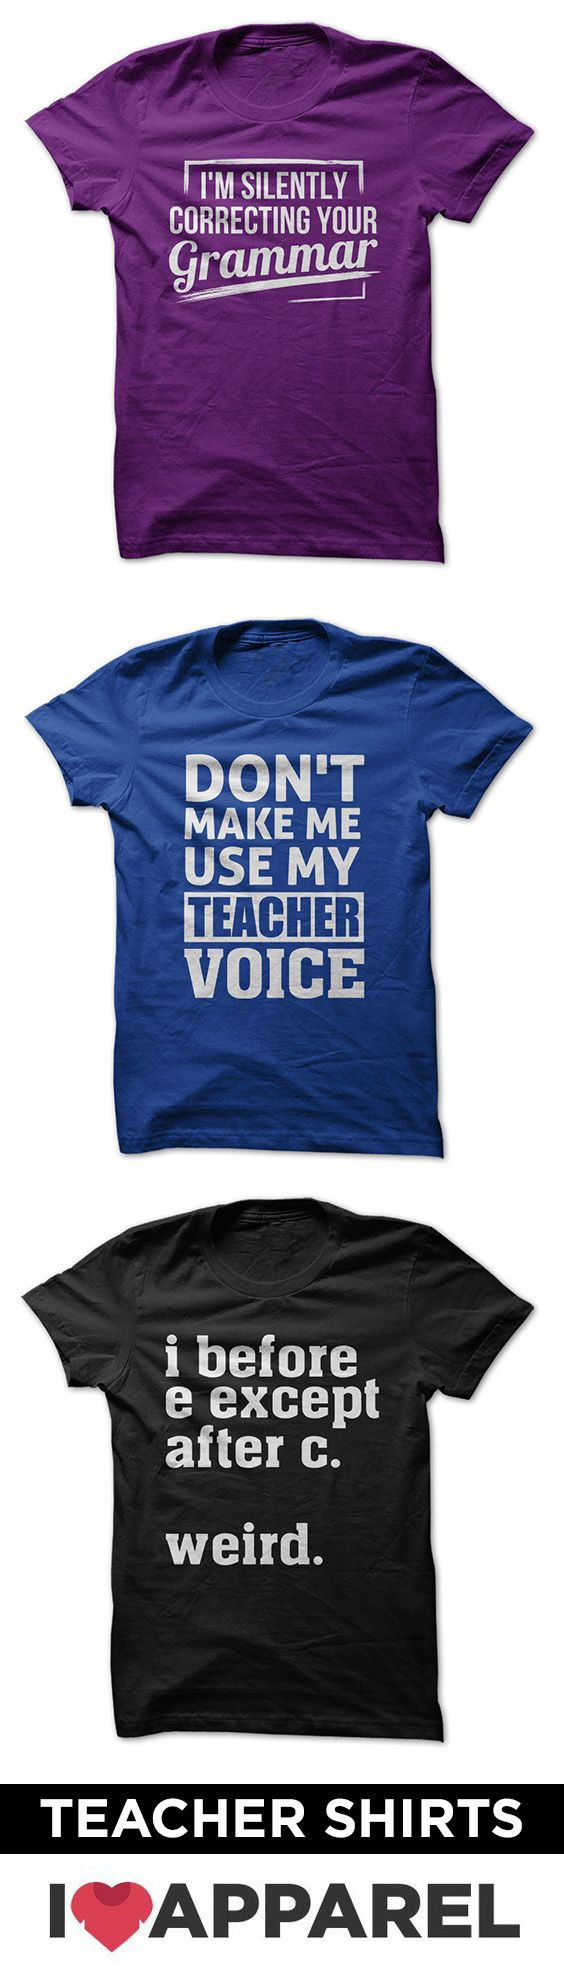 Check out entire collection of teacher shirts.